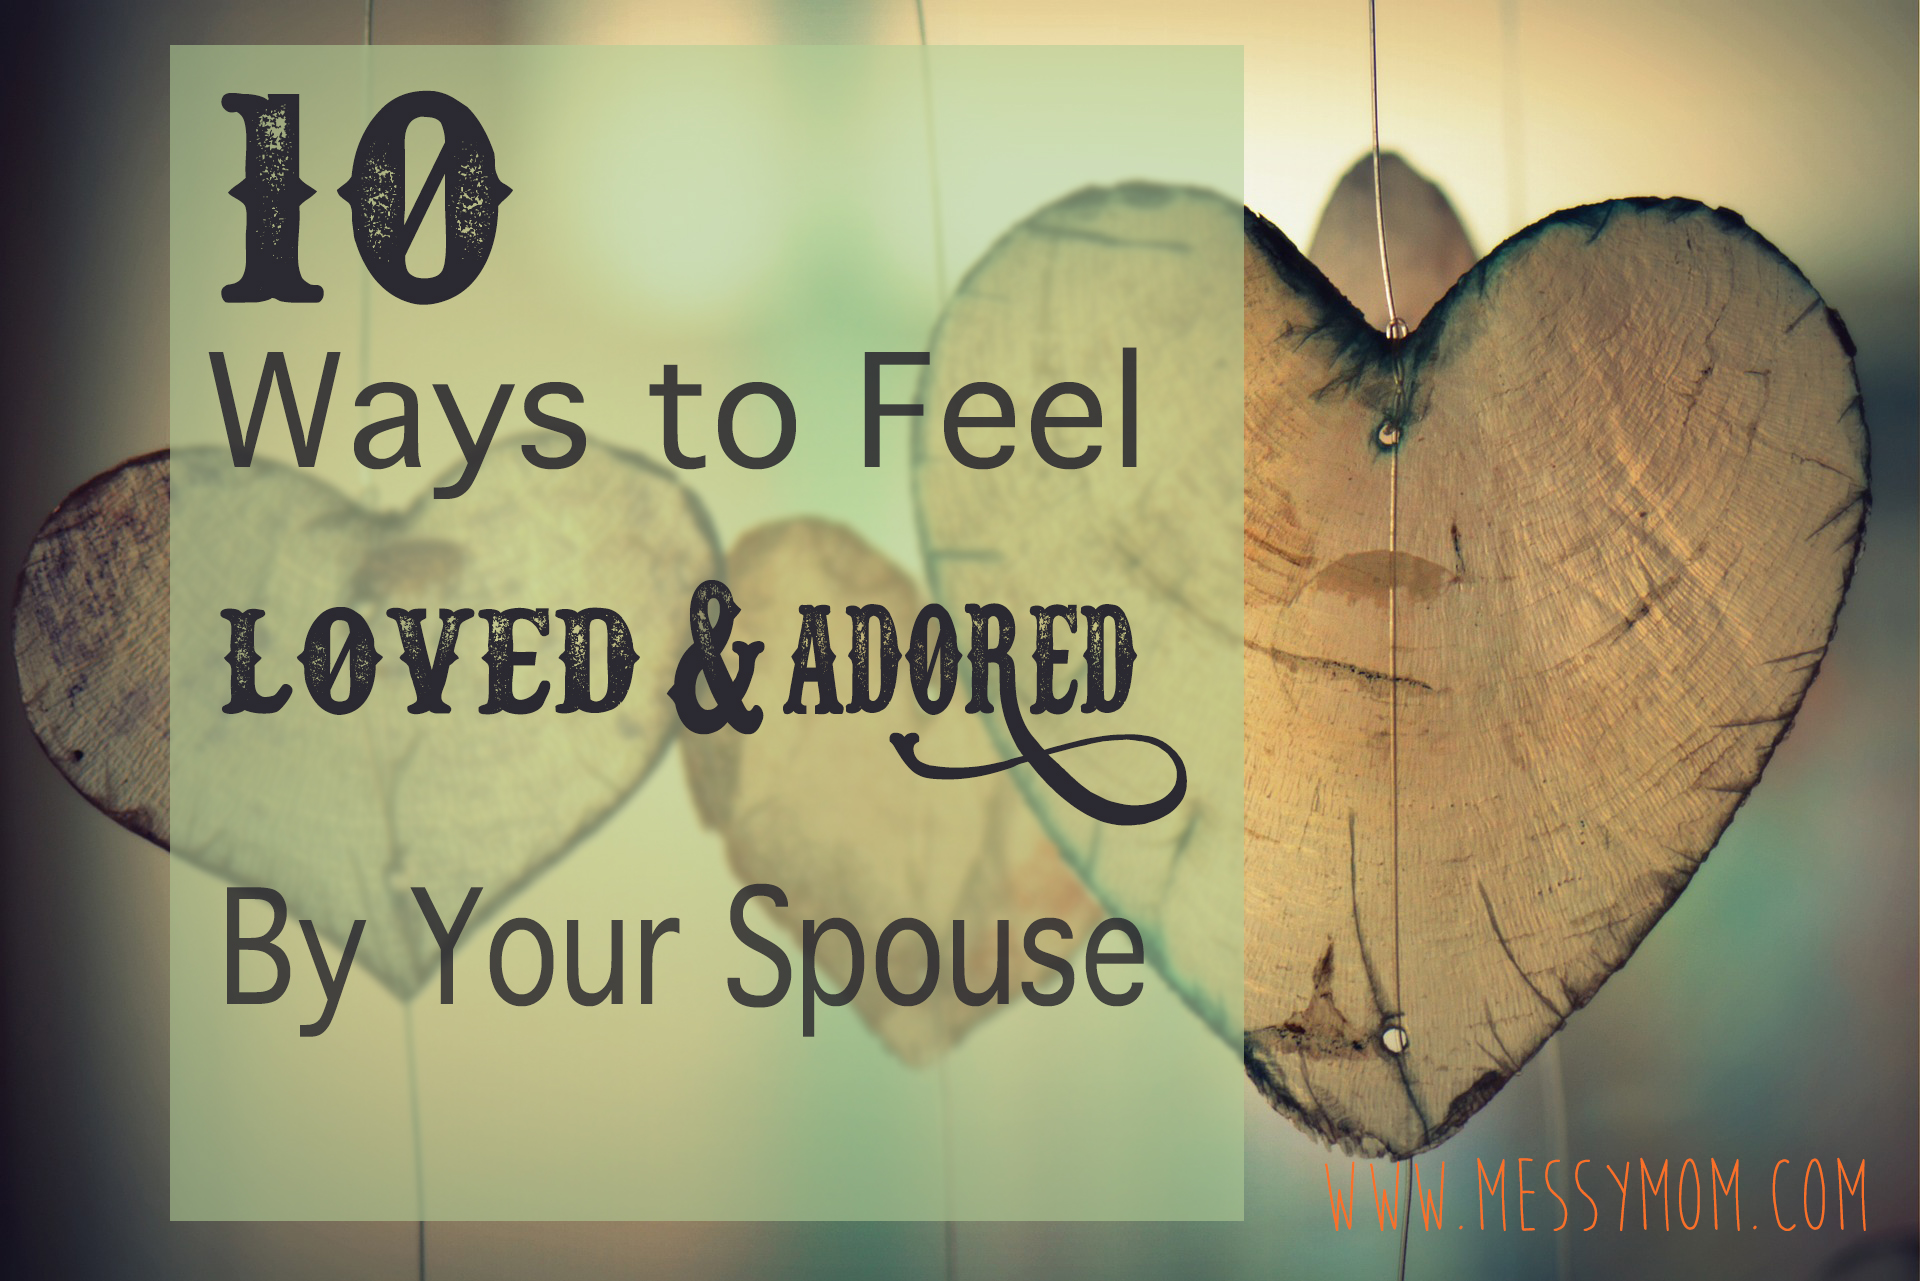 10 Ways To Feel Loved and Adored By Your Spouse